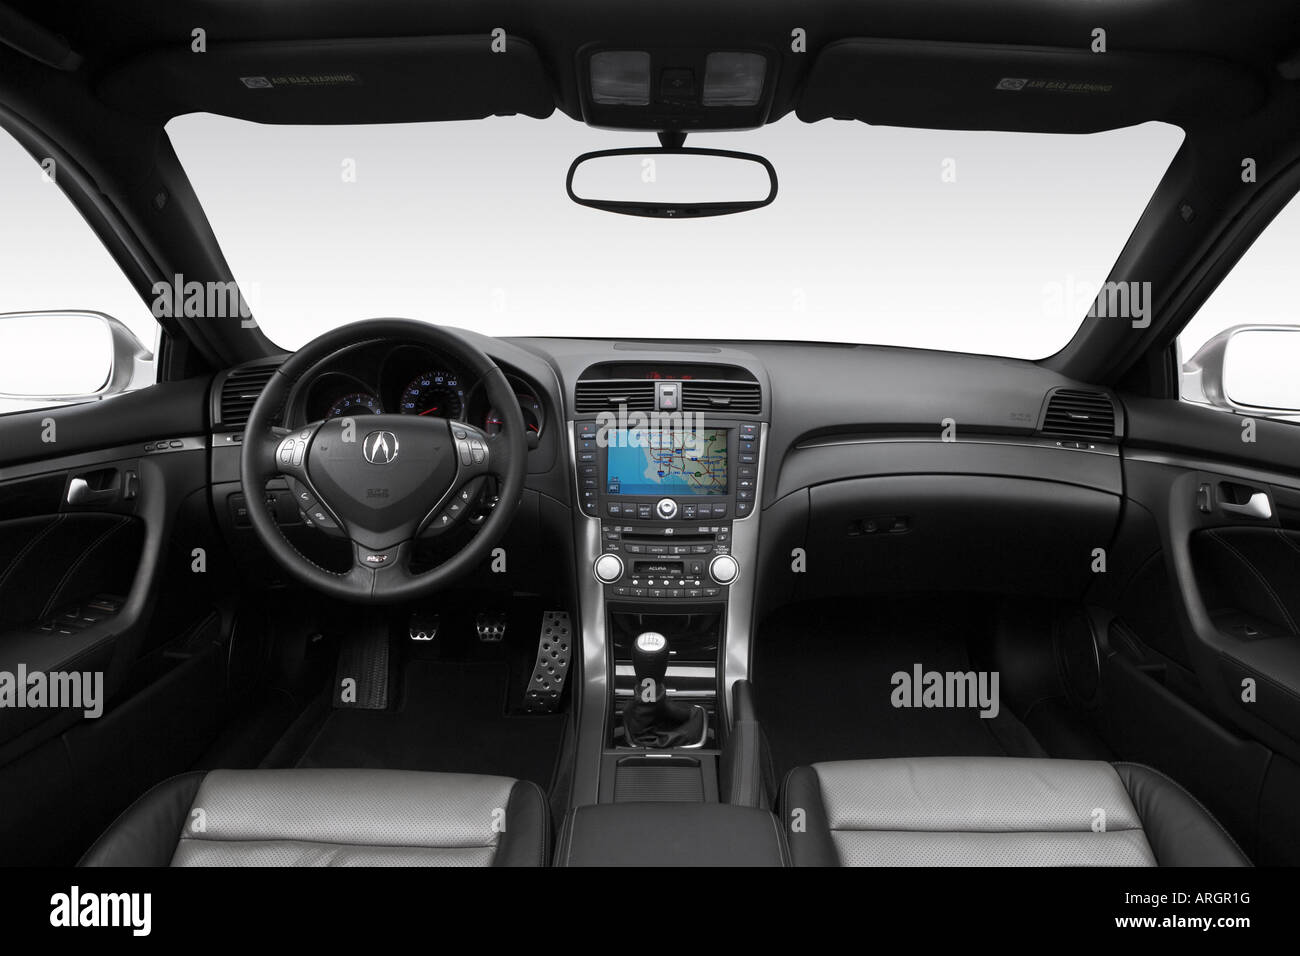 2007 Acura TL Type-S in Silver - Dashboard, center console, gear ...